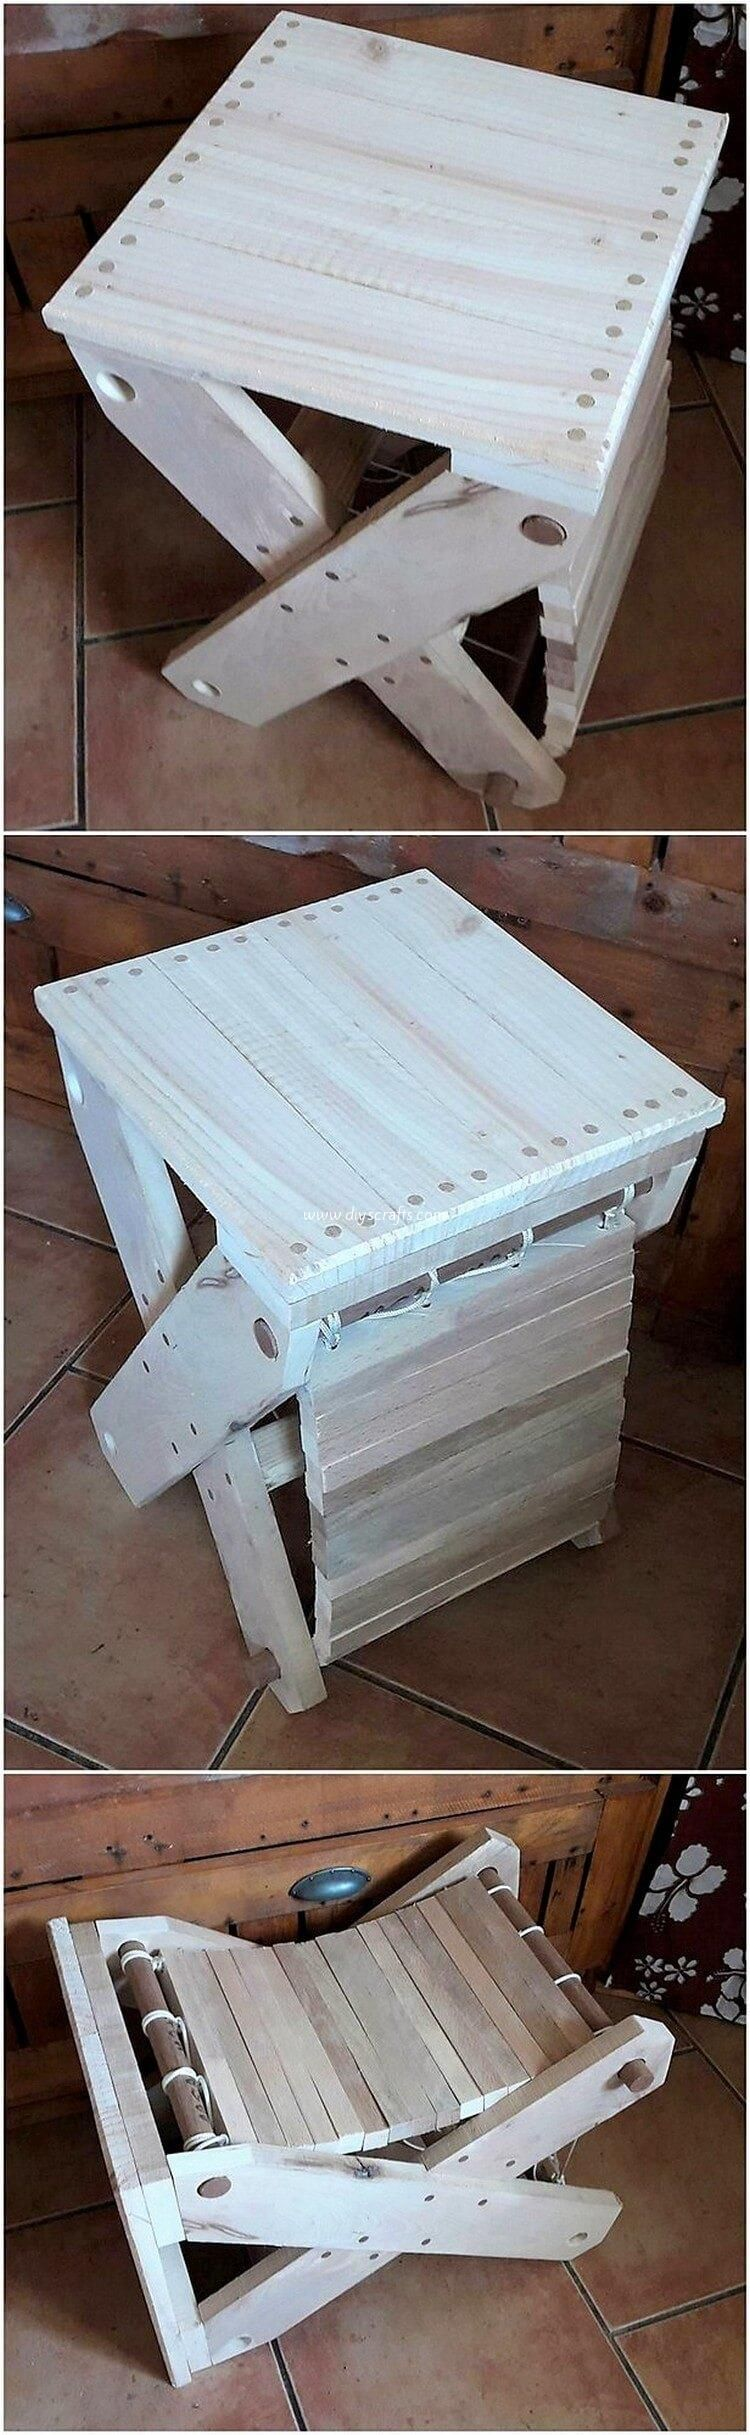 Awesome DIY Ideas with Old Pallets #oldpalletsforcrafting